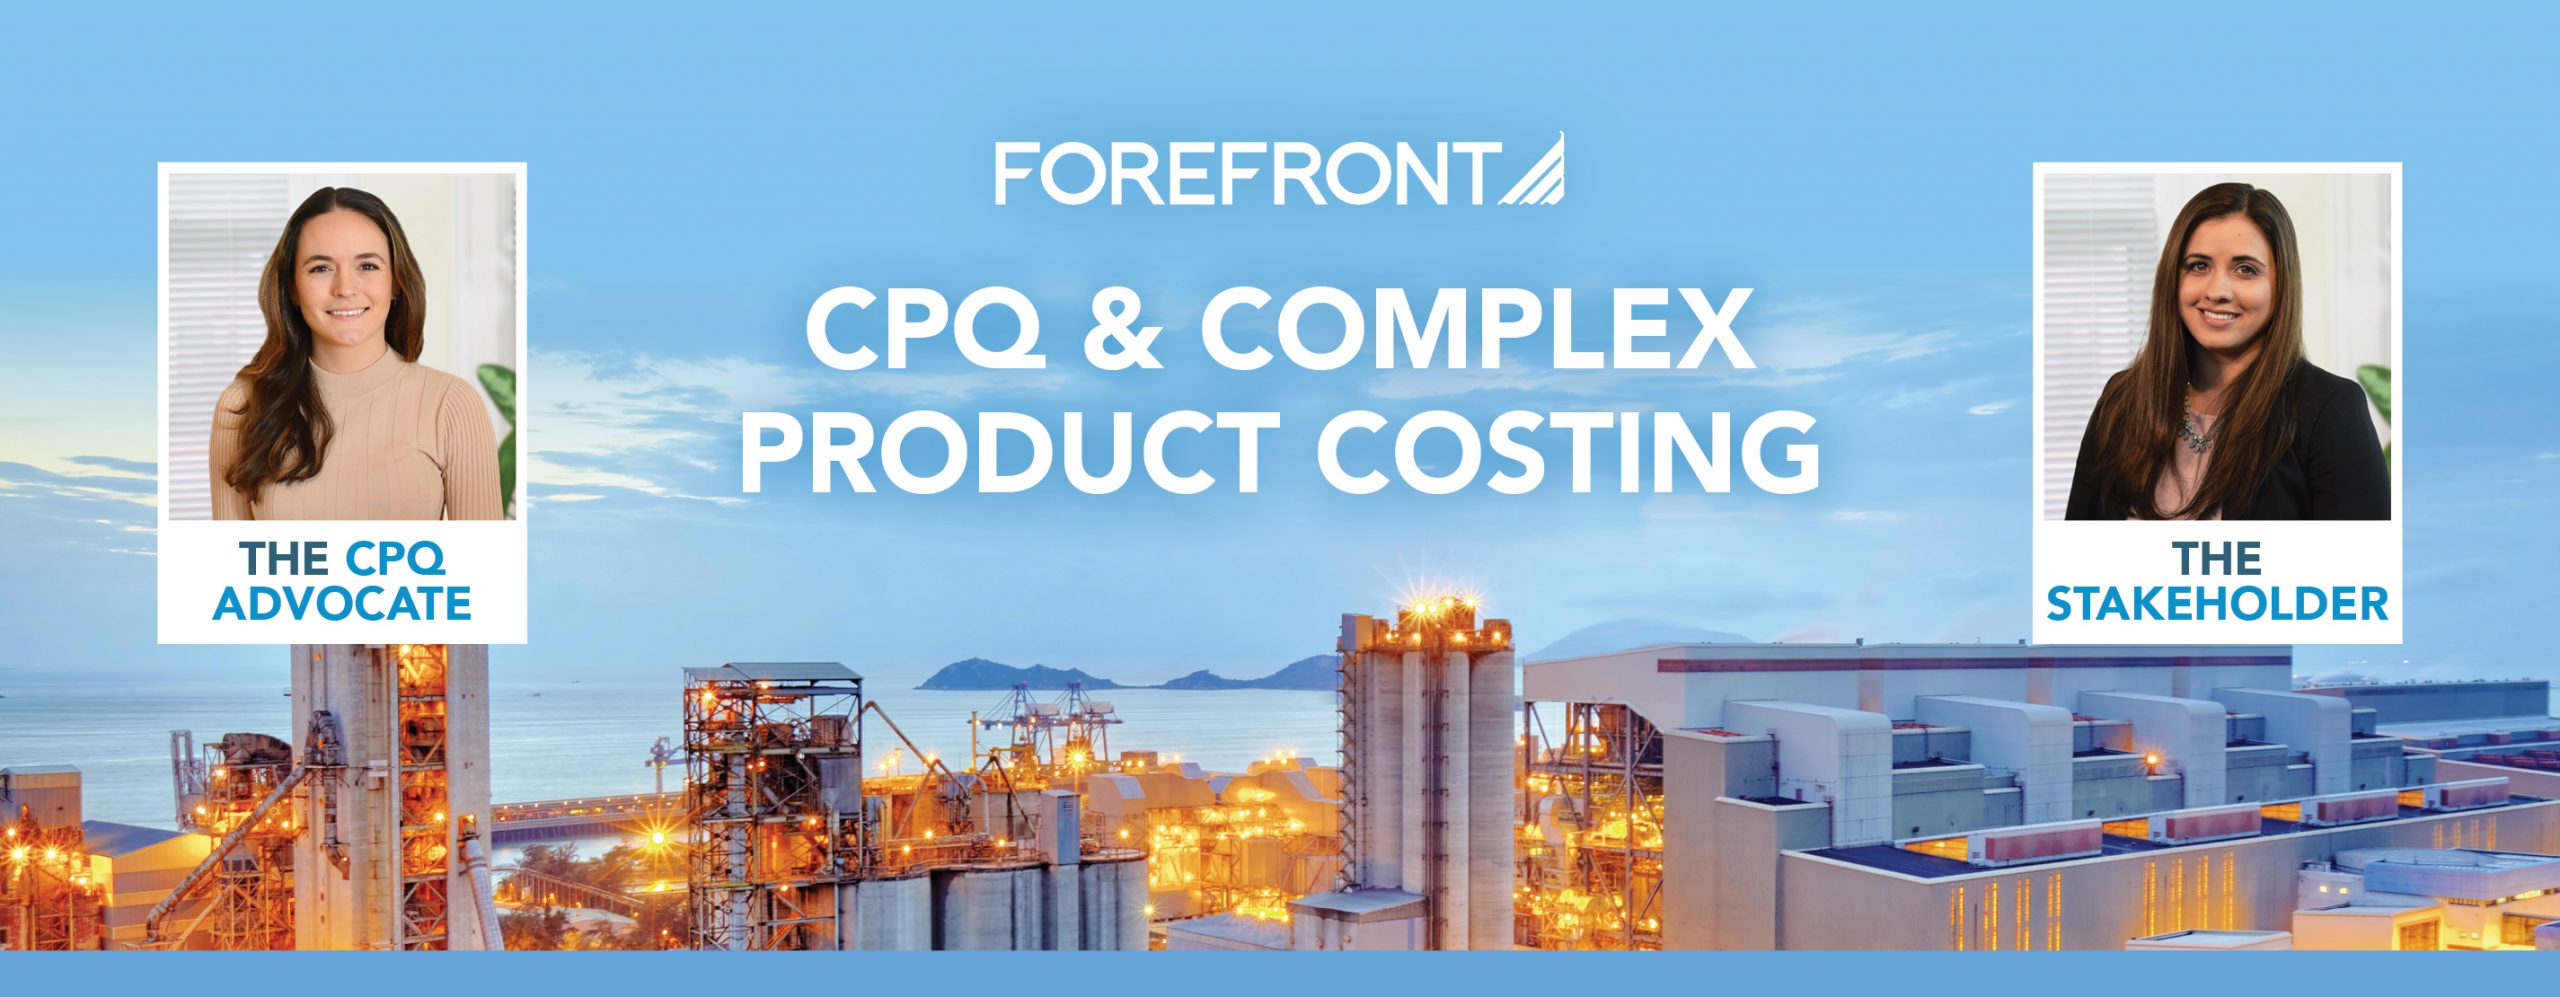 CPQ & Complex Product Costing